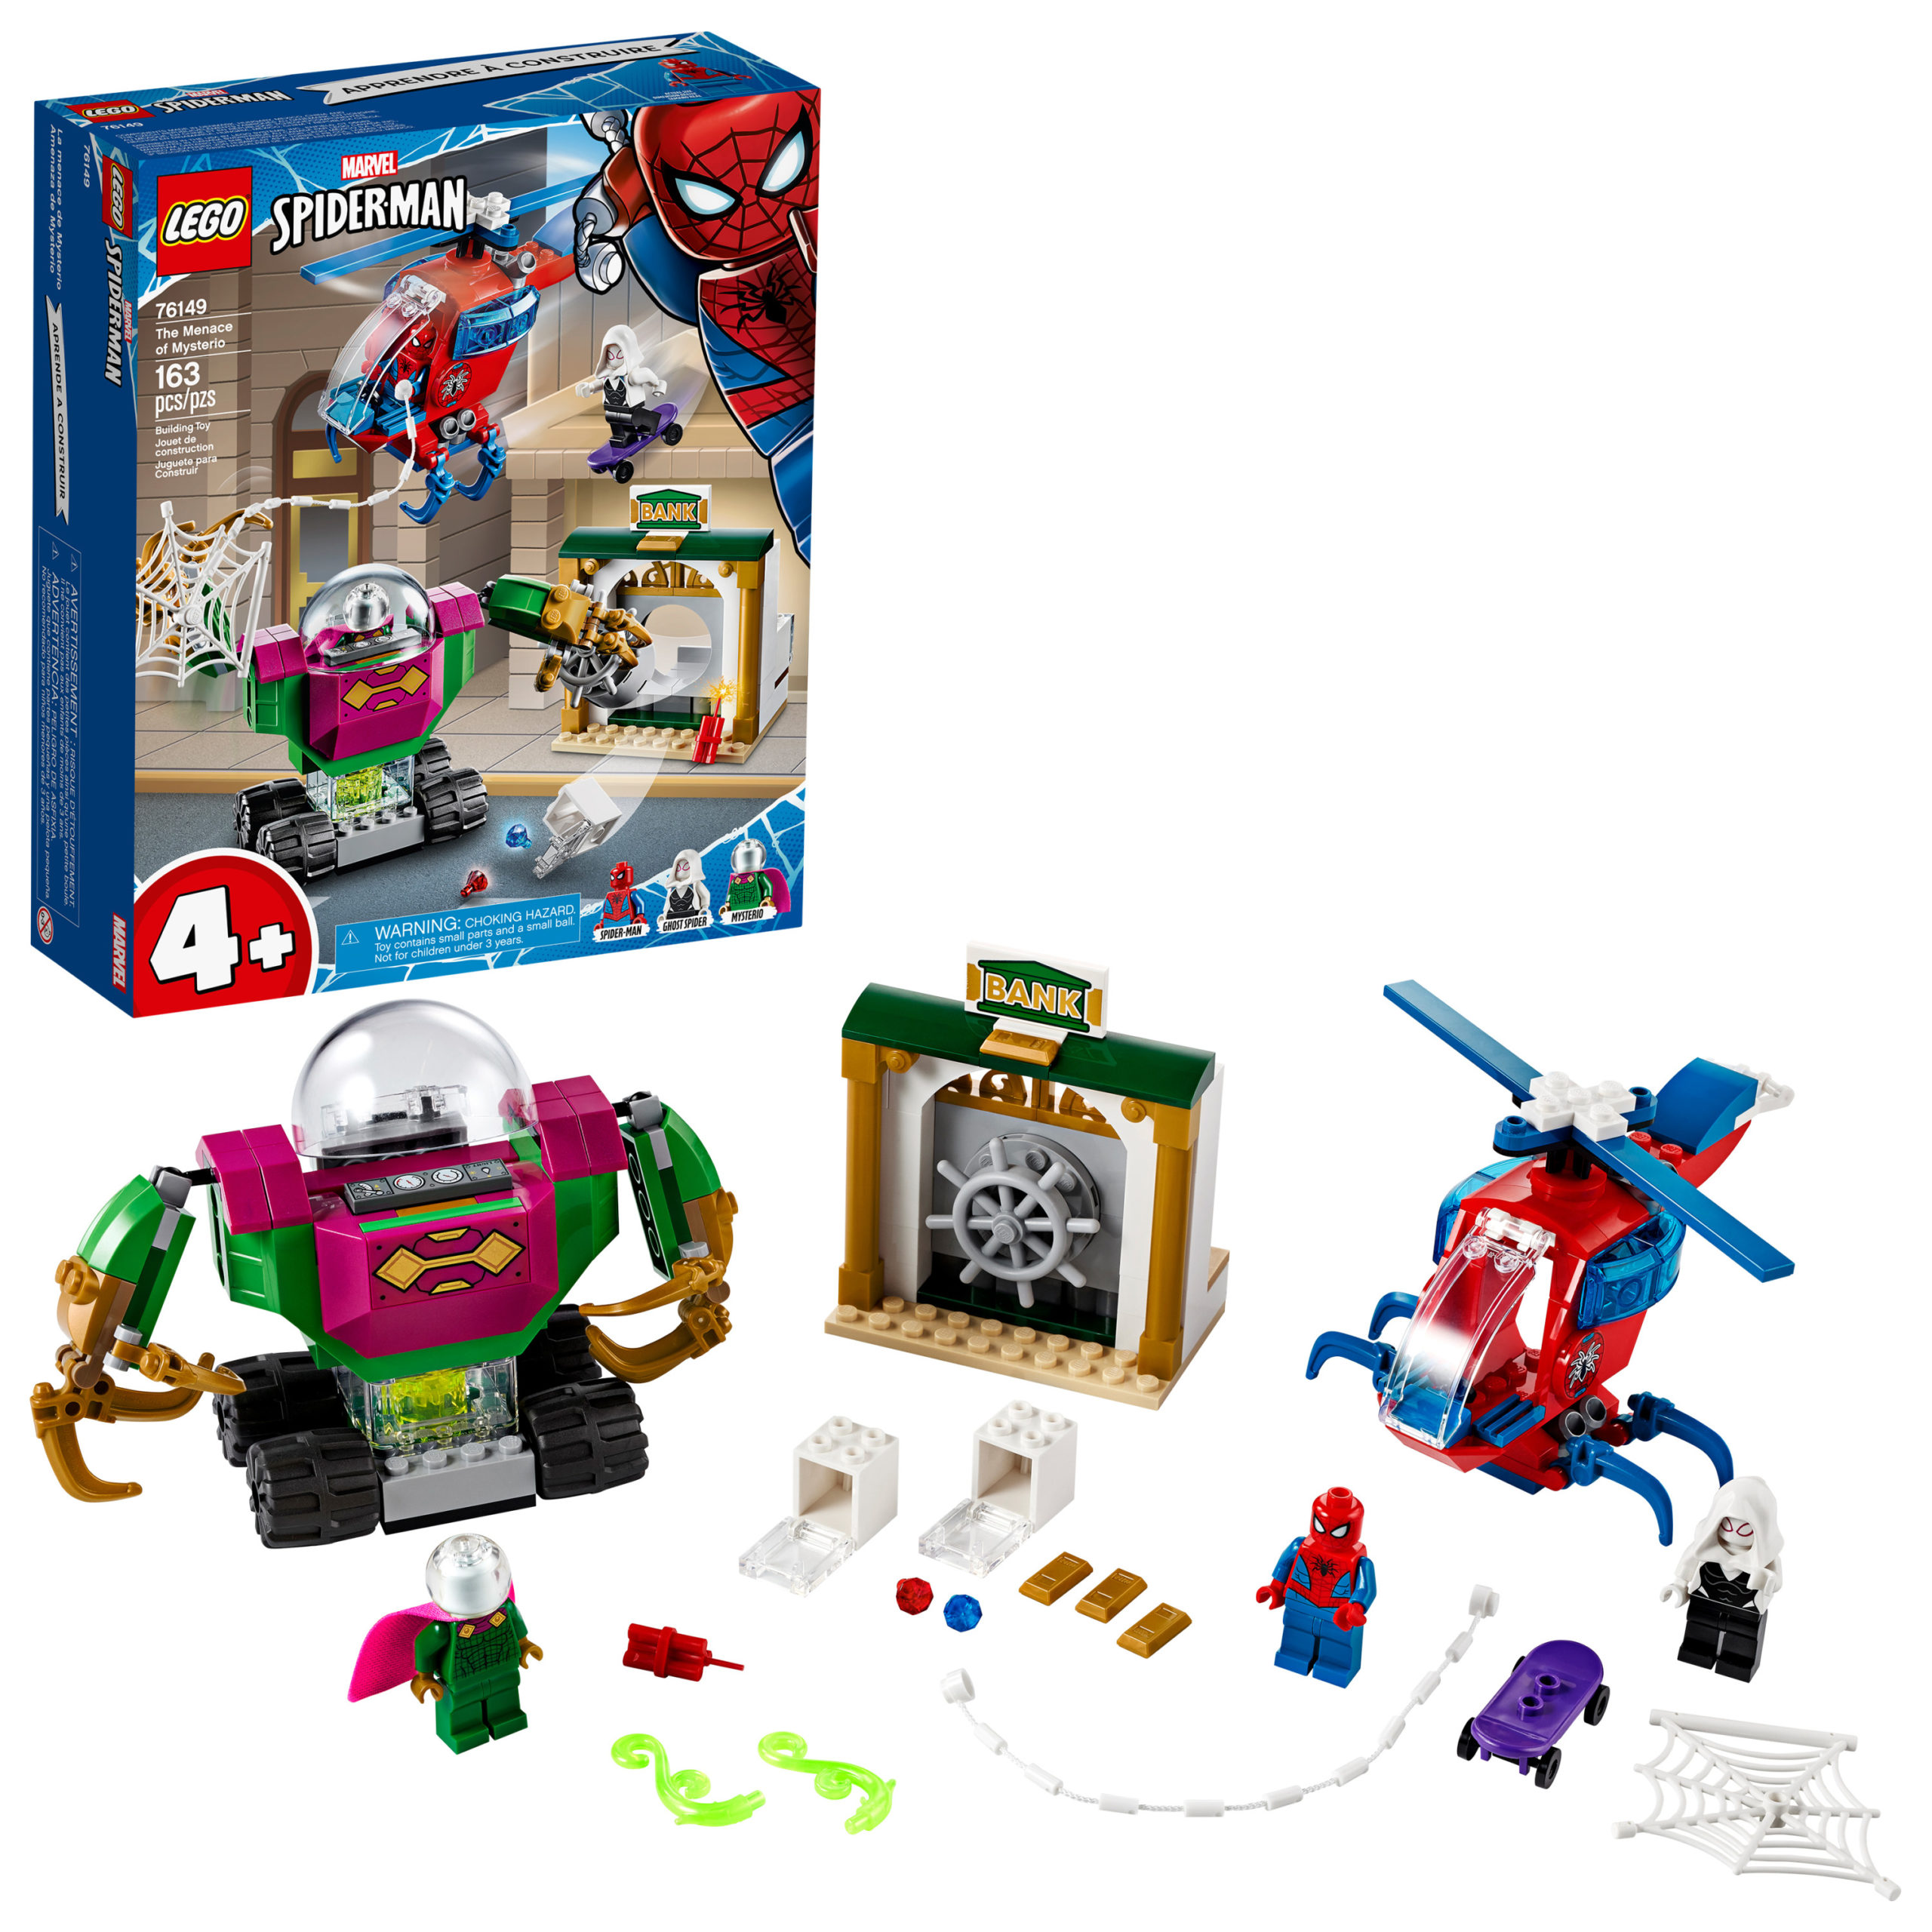 LEGO Marvel Spider-Man The Menace of Mysterio Superhero Building Set Only $19.99!